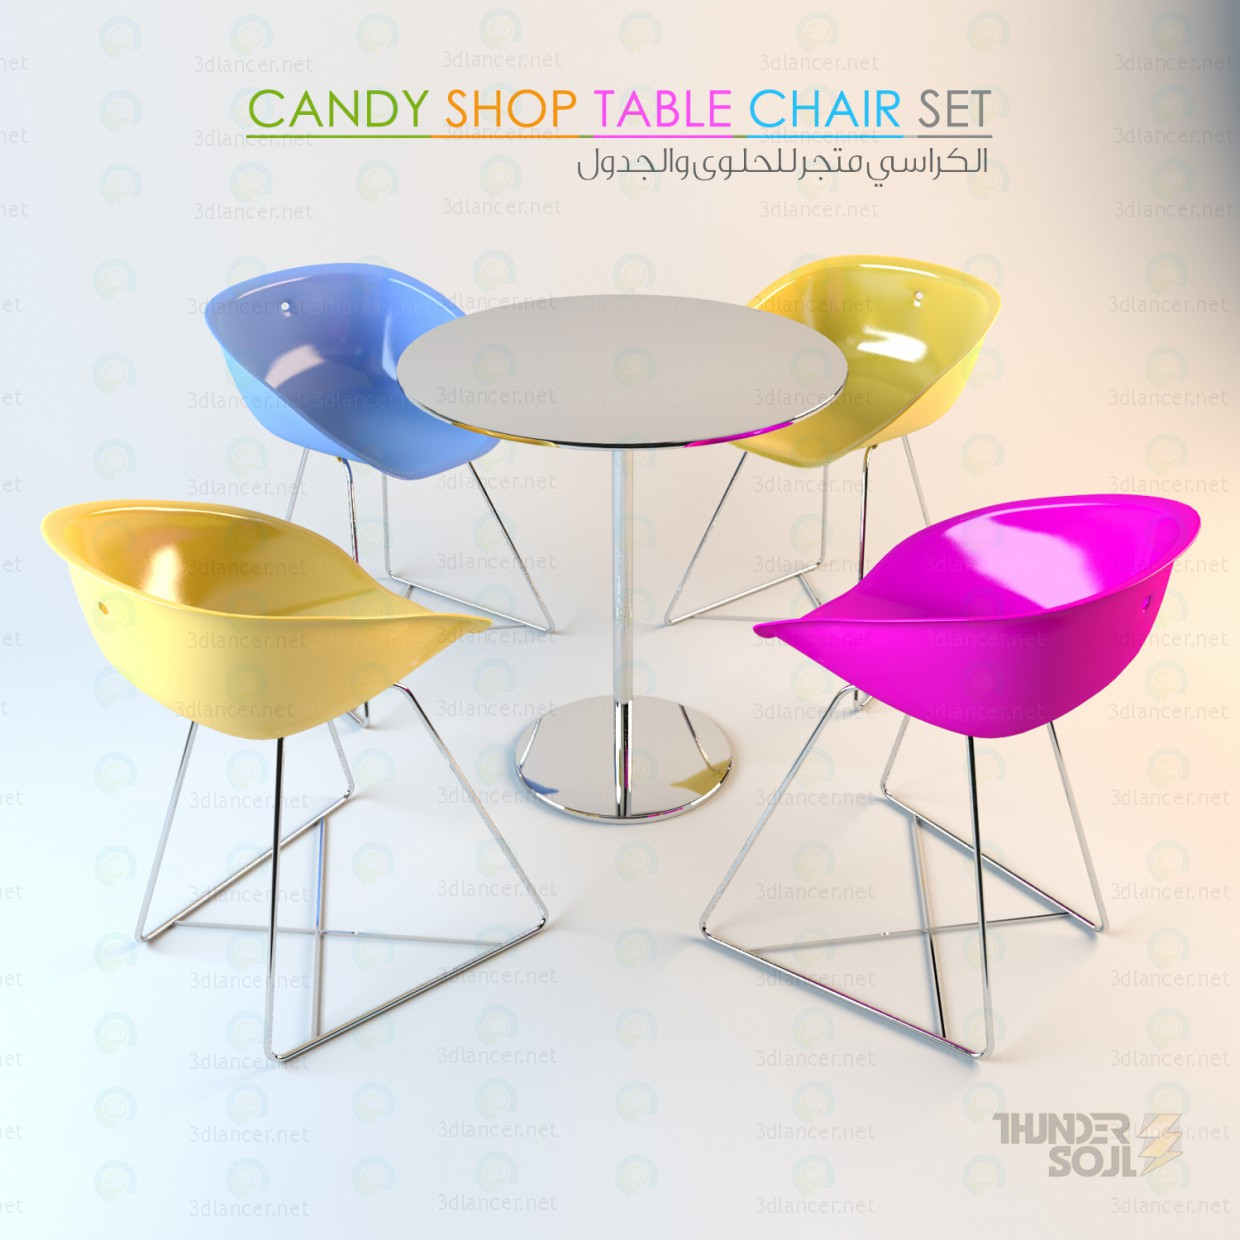 3d model Candy Shop Table Chair Set - preview